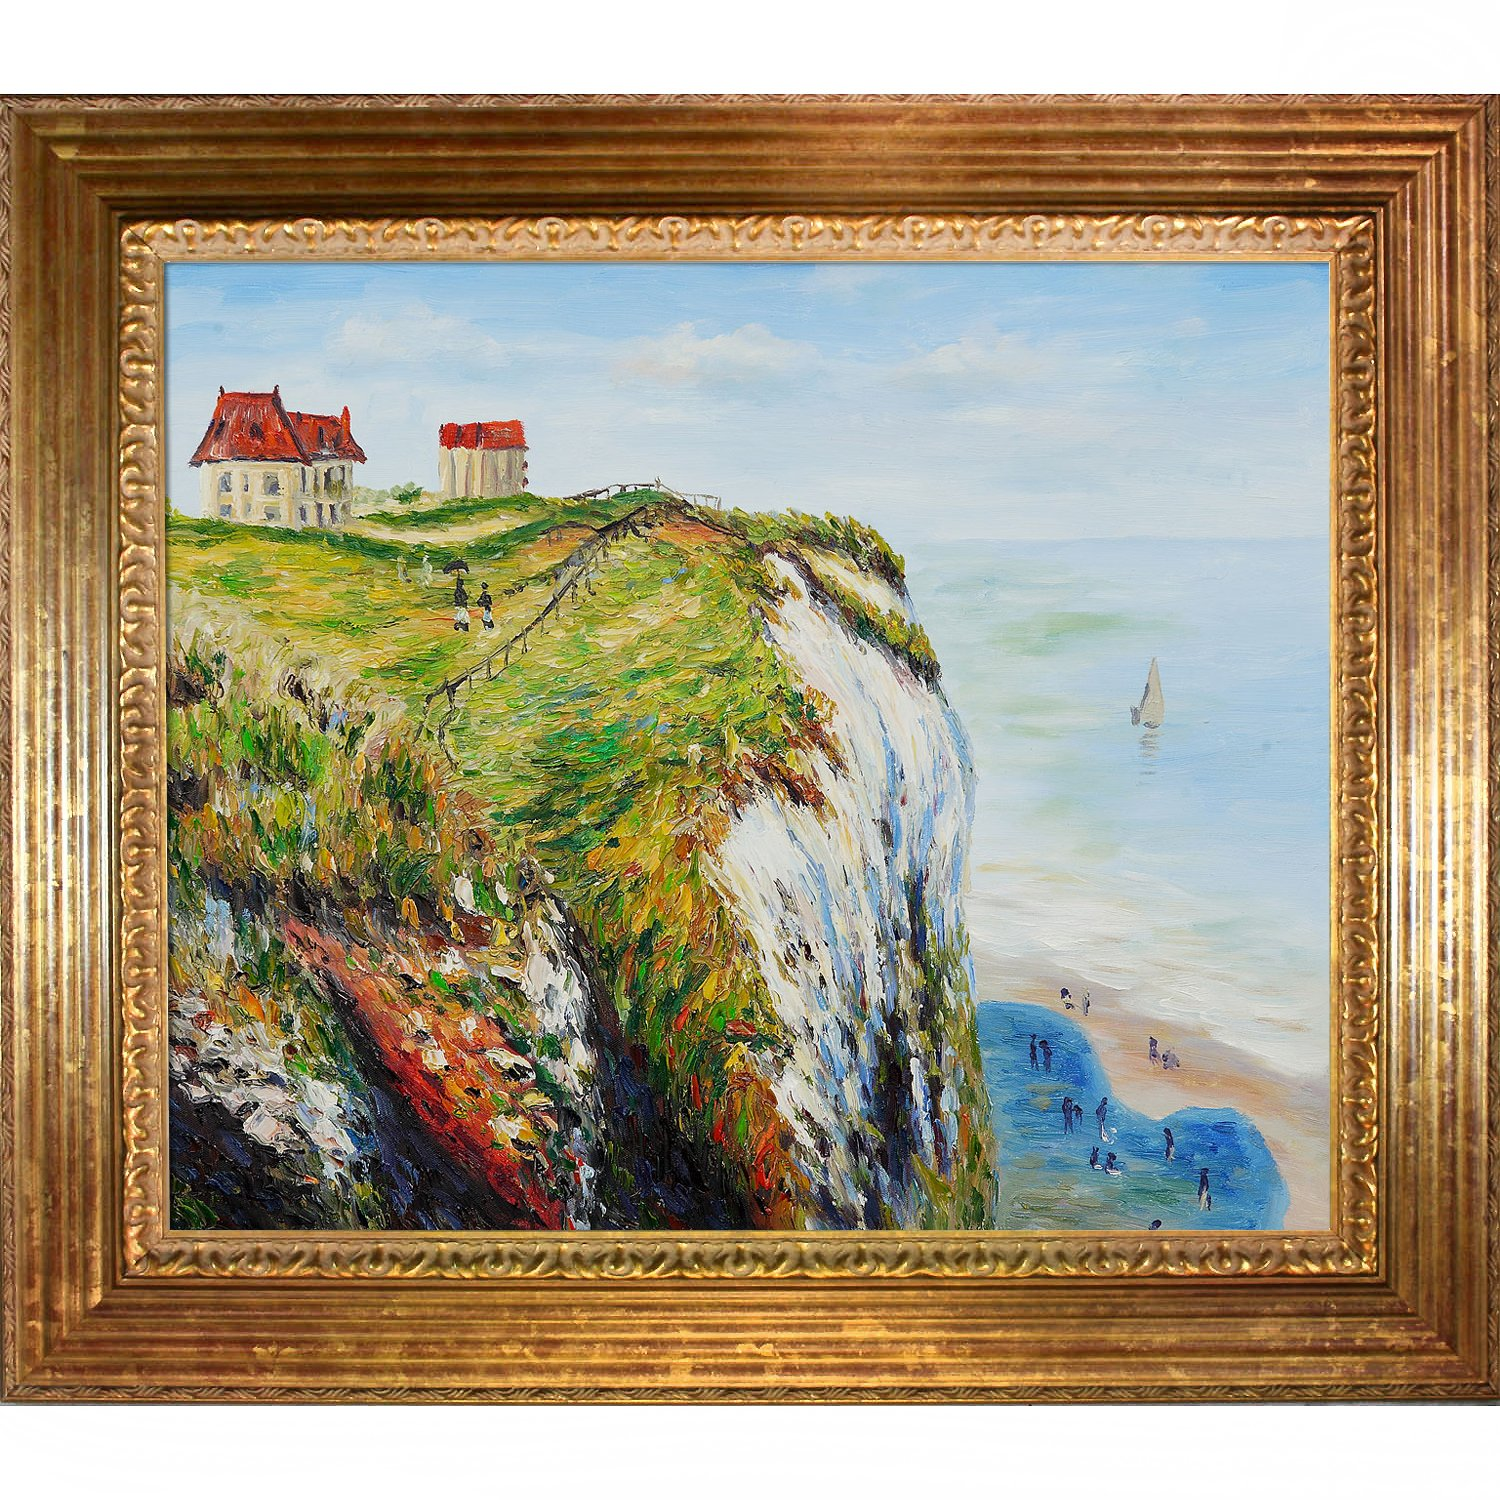 overstockArt Cliff at Dieppe with Vienna Wood Frame Oil Painting by Claude Monet